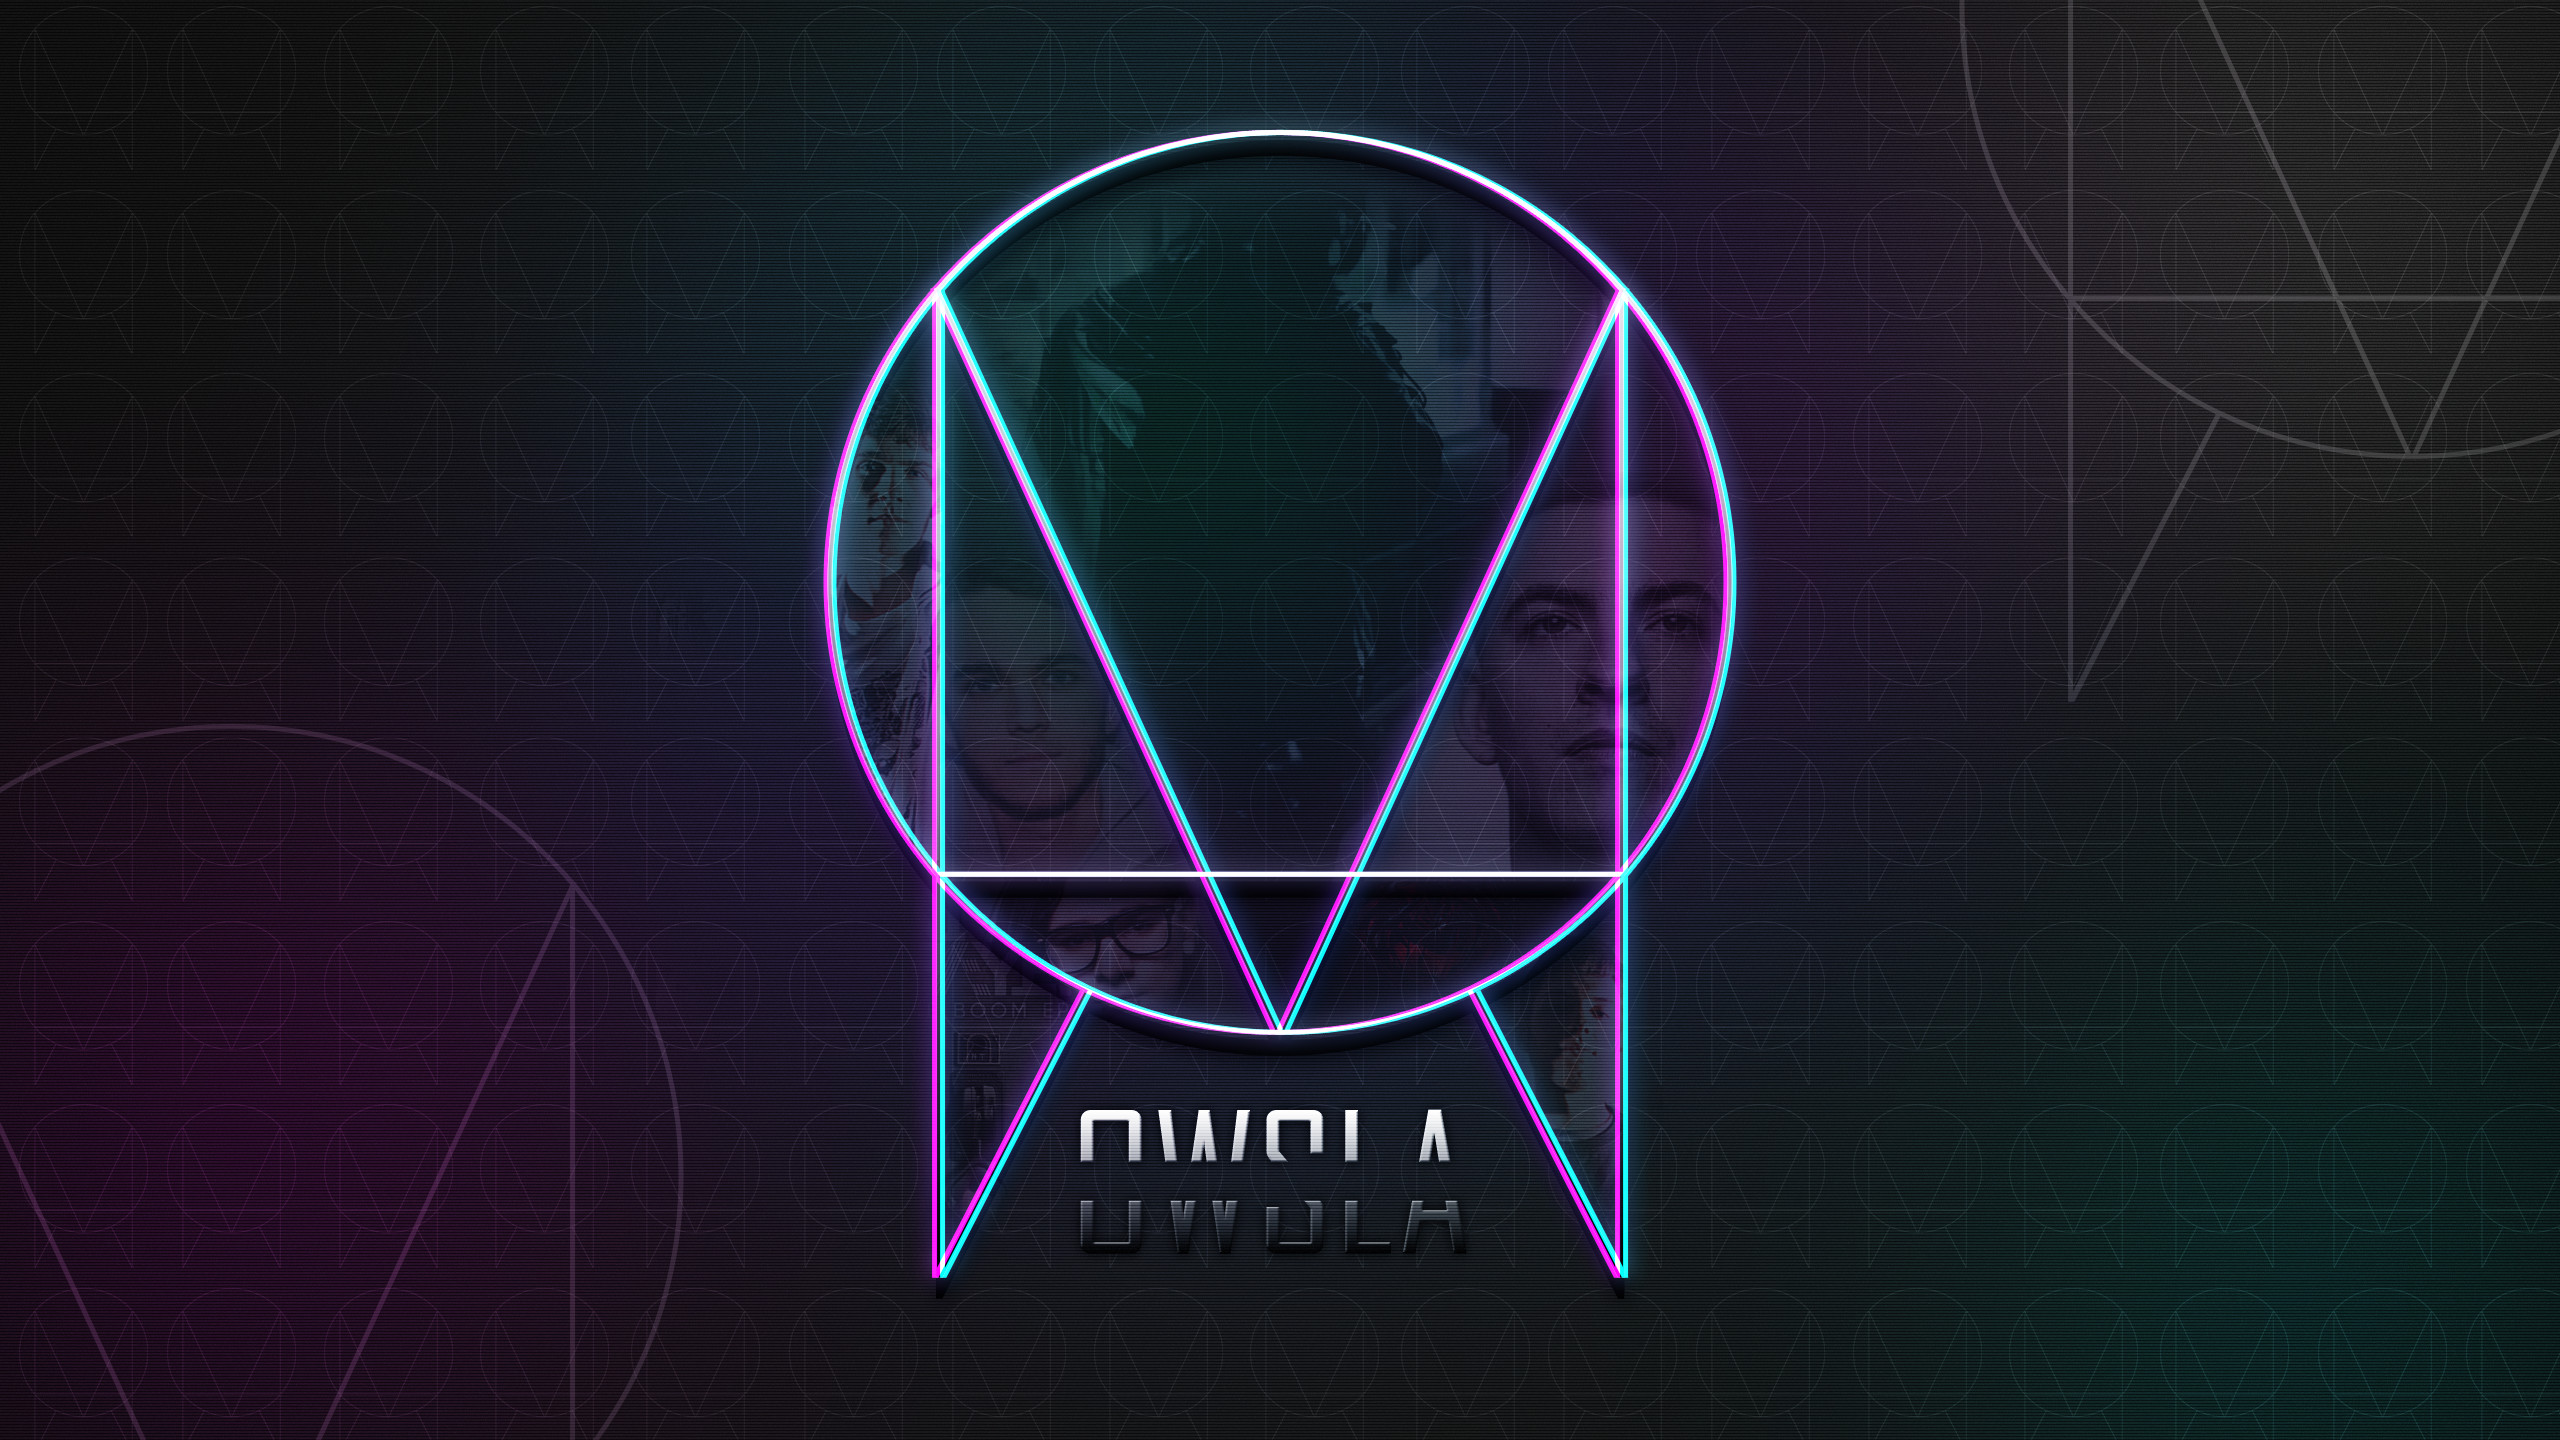 2560x1440 OWSLA Wallpaper by yamimuc3 OWSLA Wallpaper by yamimuc3